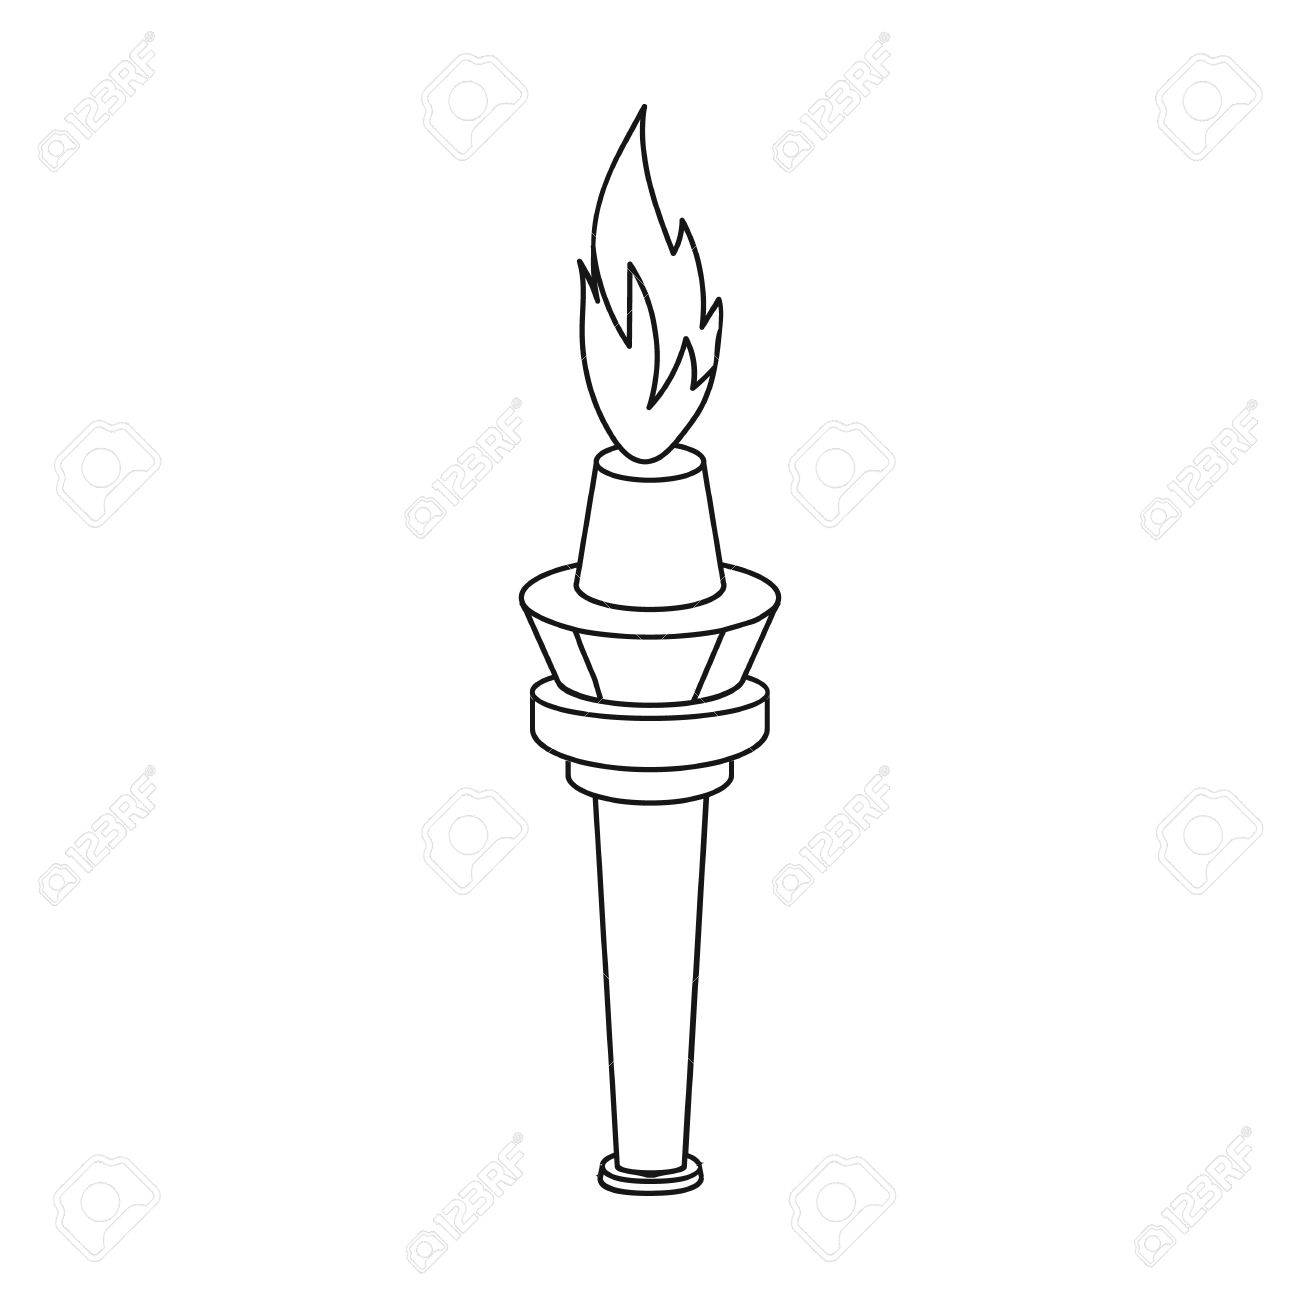 Simple Street Lamp In The Form Of A Torch With An Open Single Icon Fire Drawing